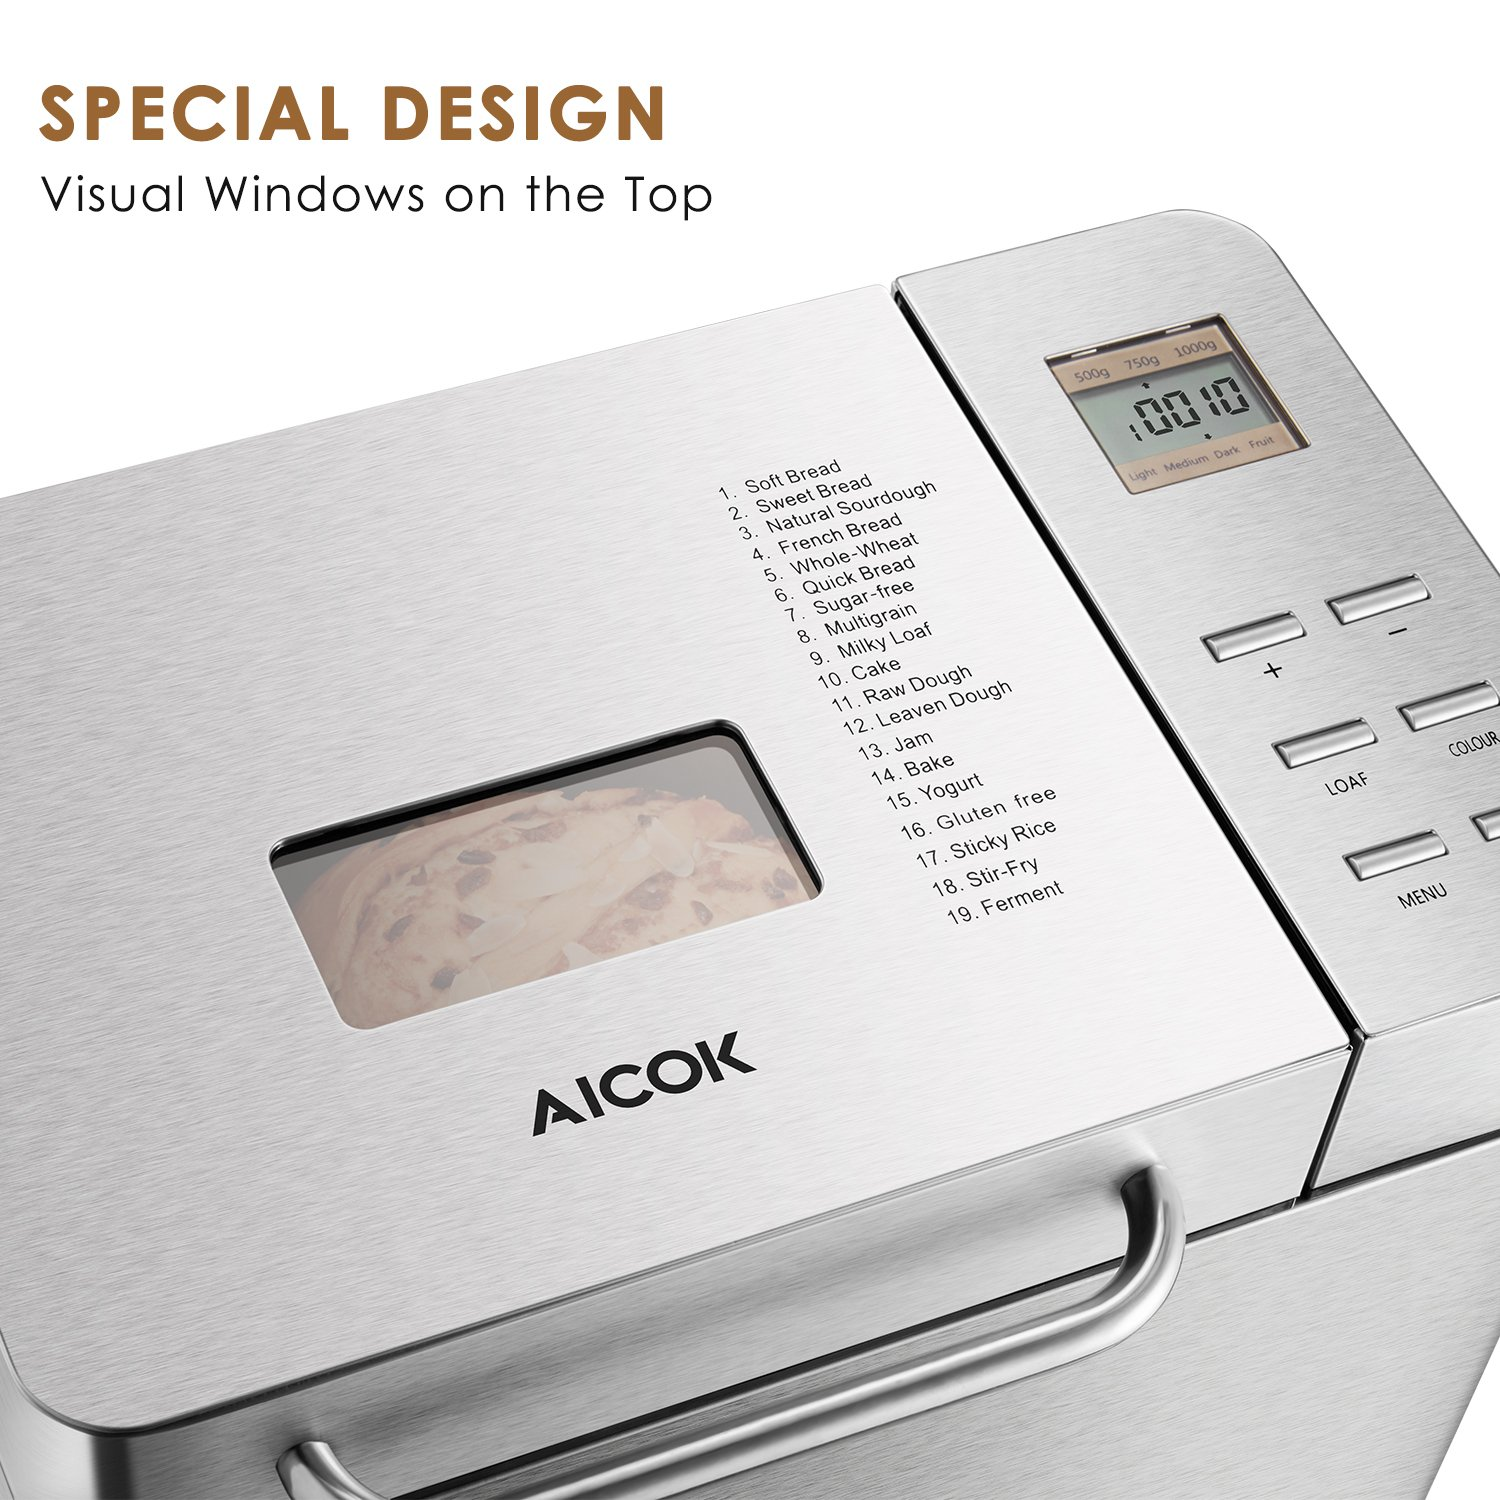 Automatic Bread Maker[2018 Upgraded], Aicok 2.2LB Fully Stainless Steel Bread Machine with Dispenser(19 Programs, 3 Loaf Sizes, 3 Crust Colors, ...